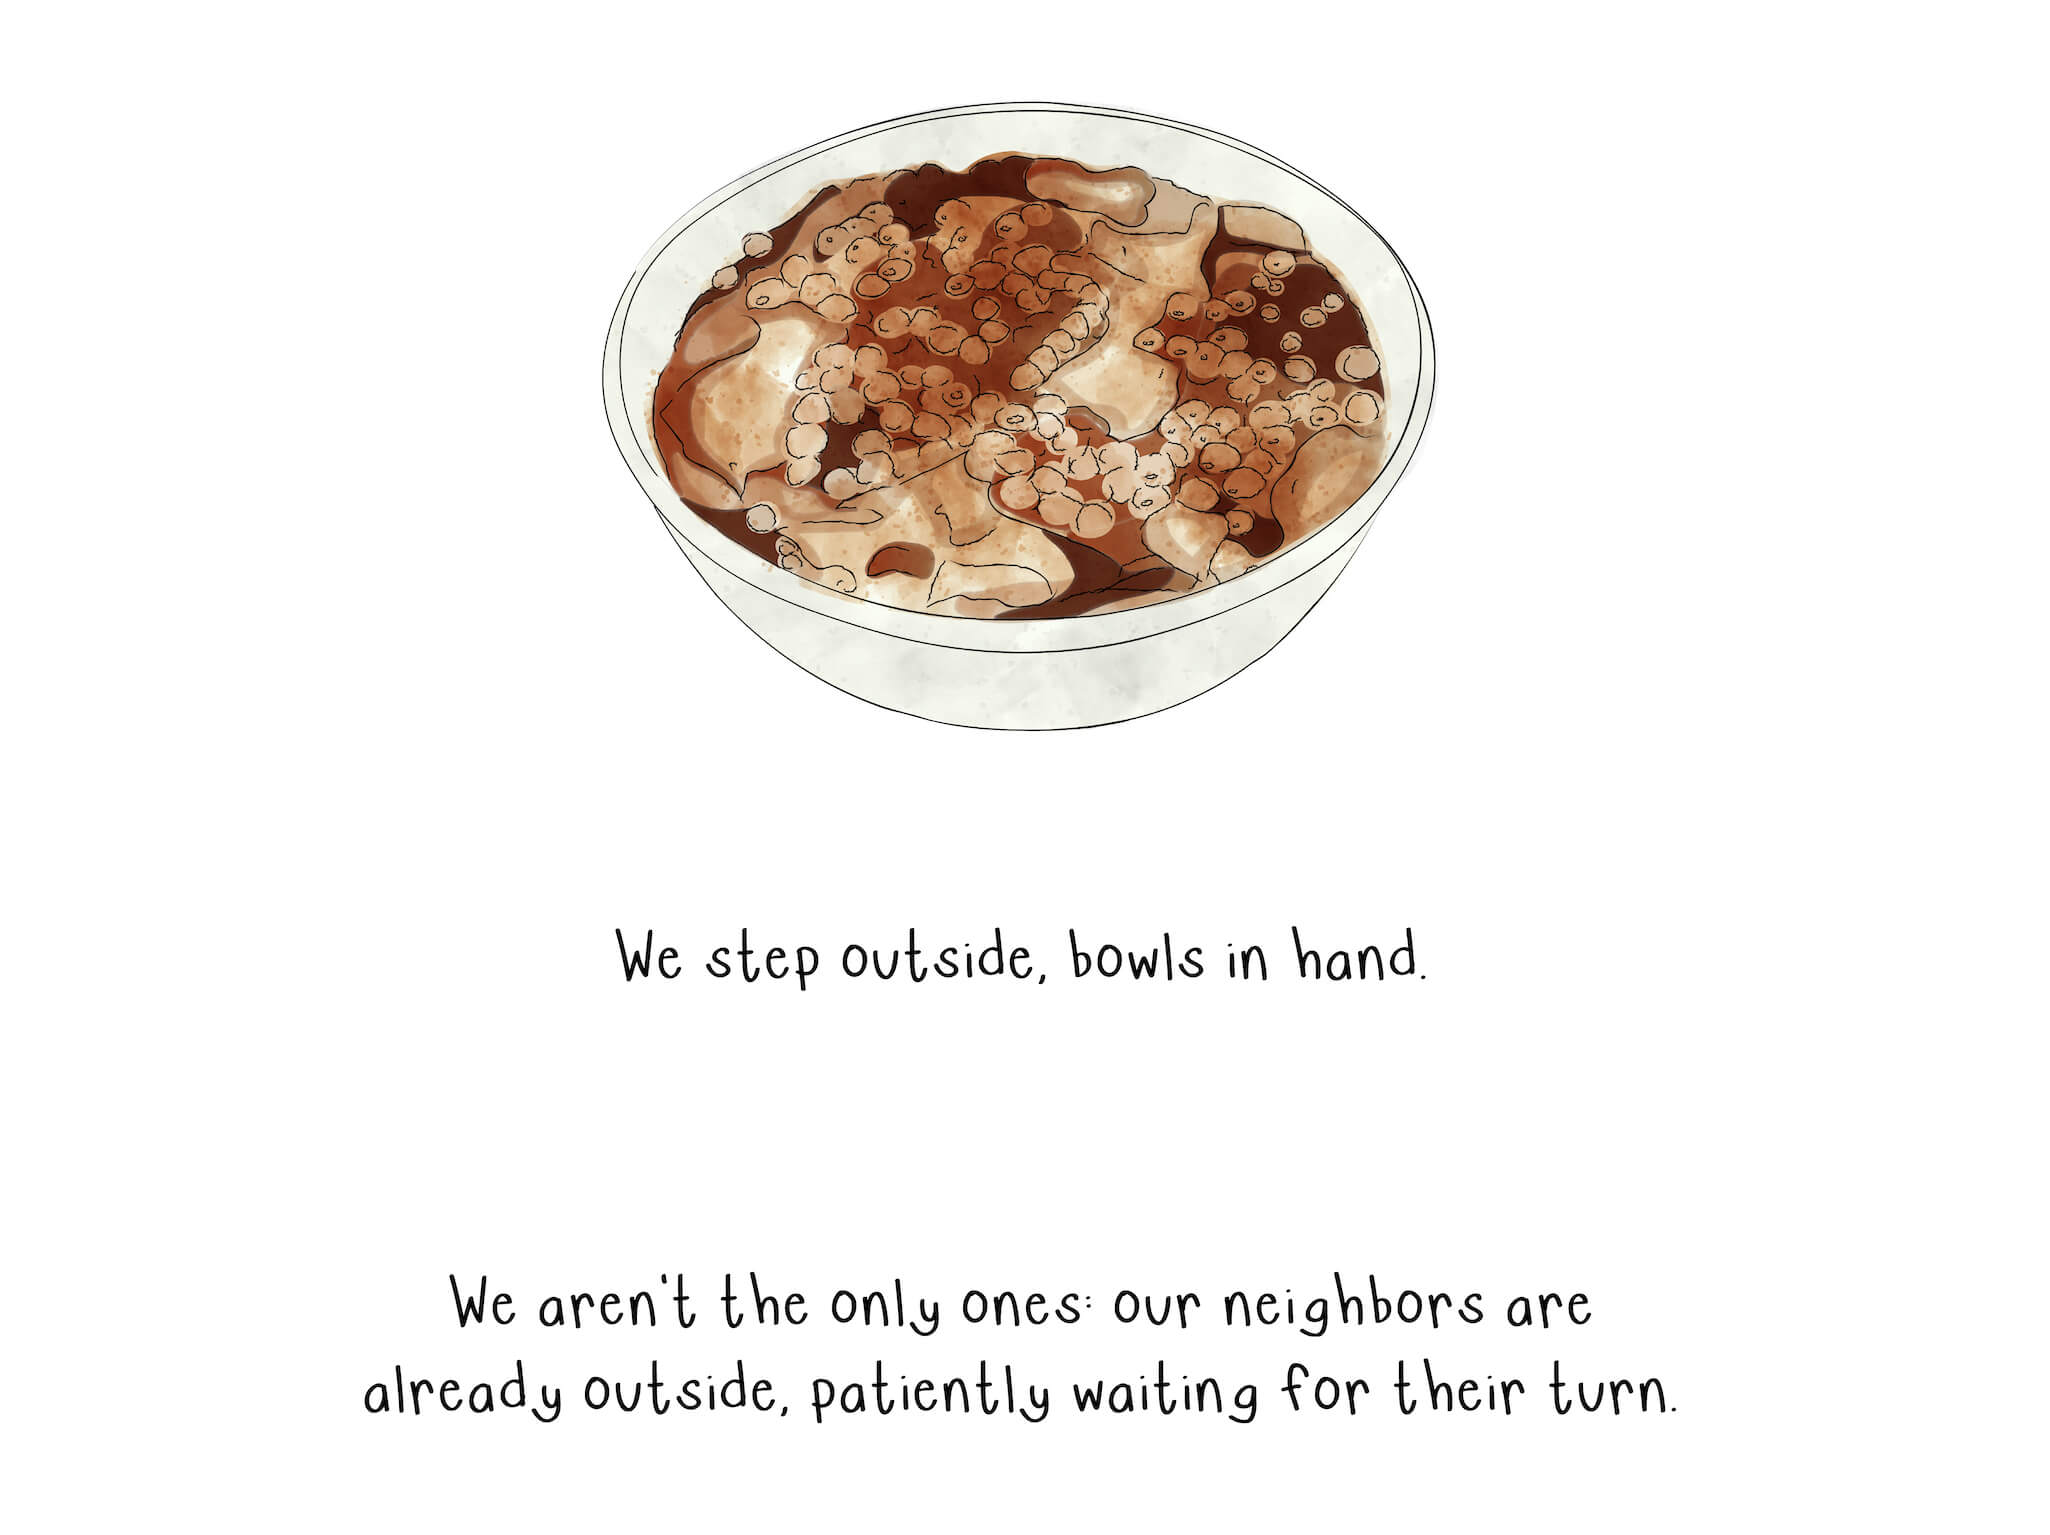 A bowl of taho, a staple for their neighborhood